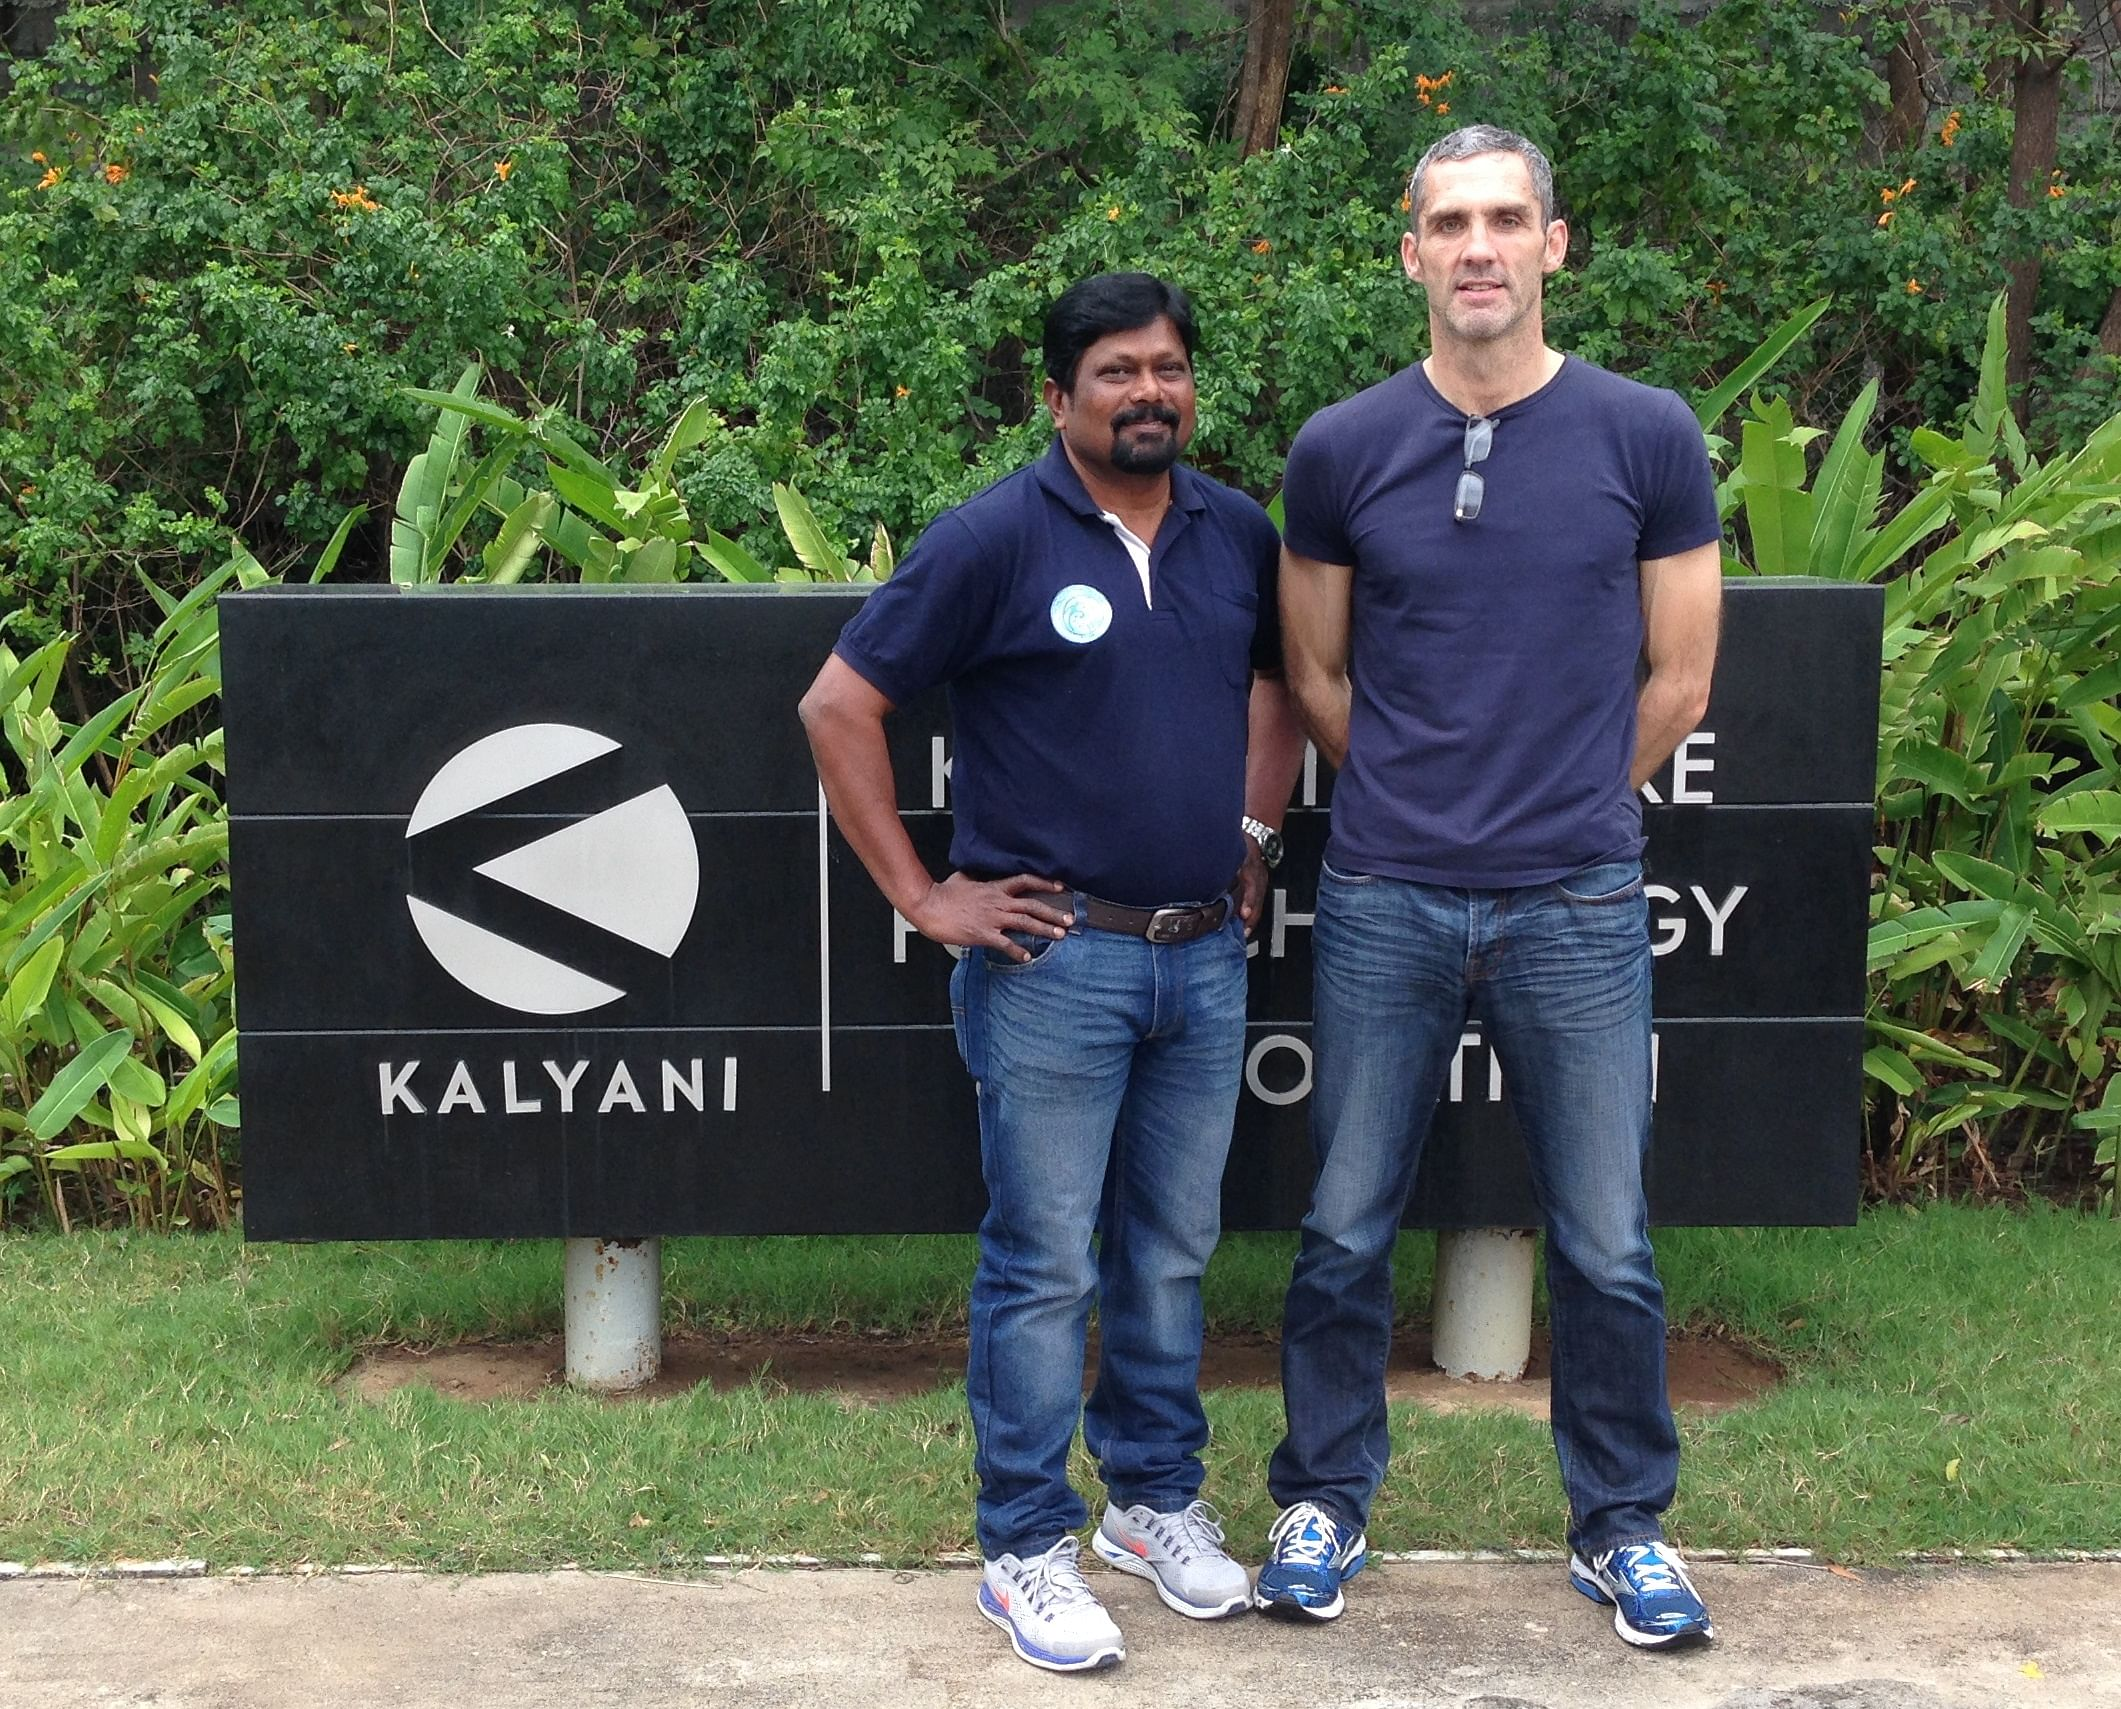 Kalyani Group appoint Stanly Rozario as assistant coach of their football club